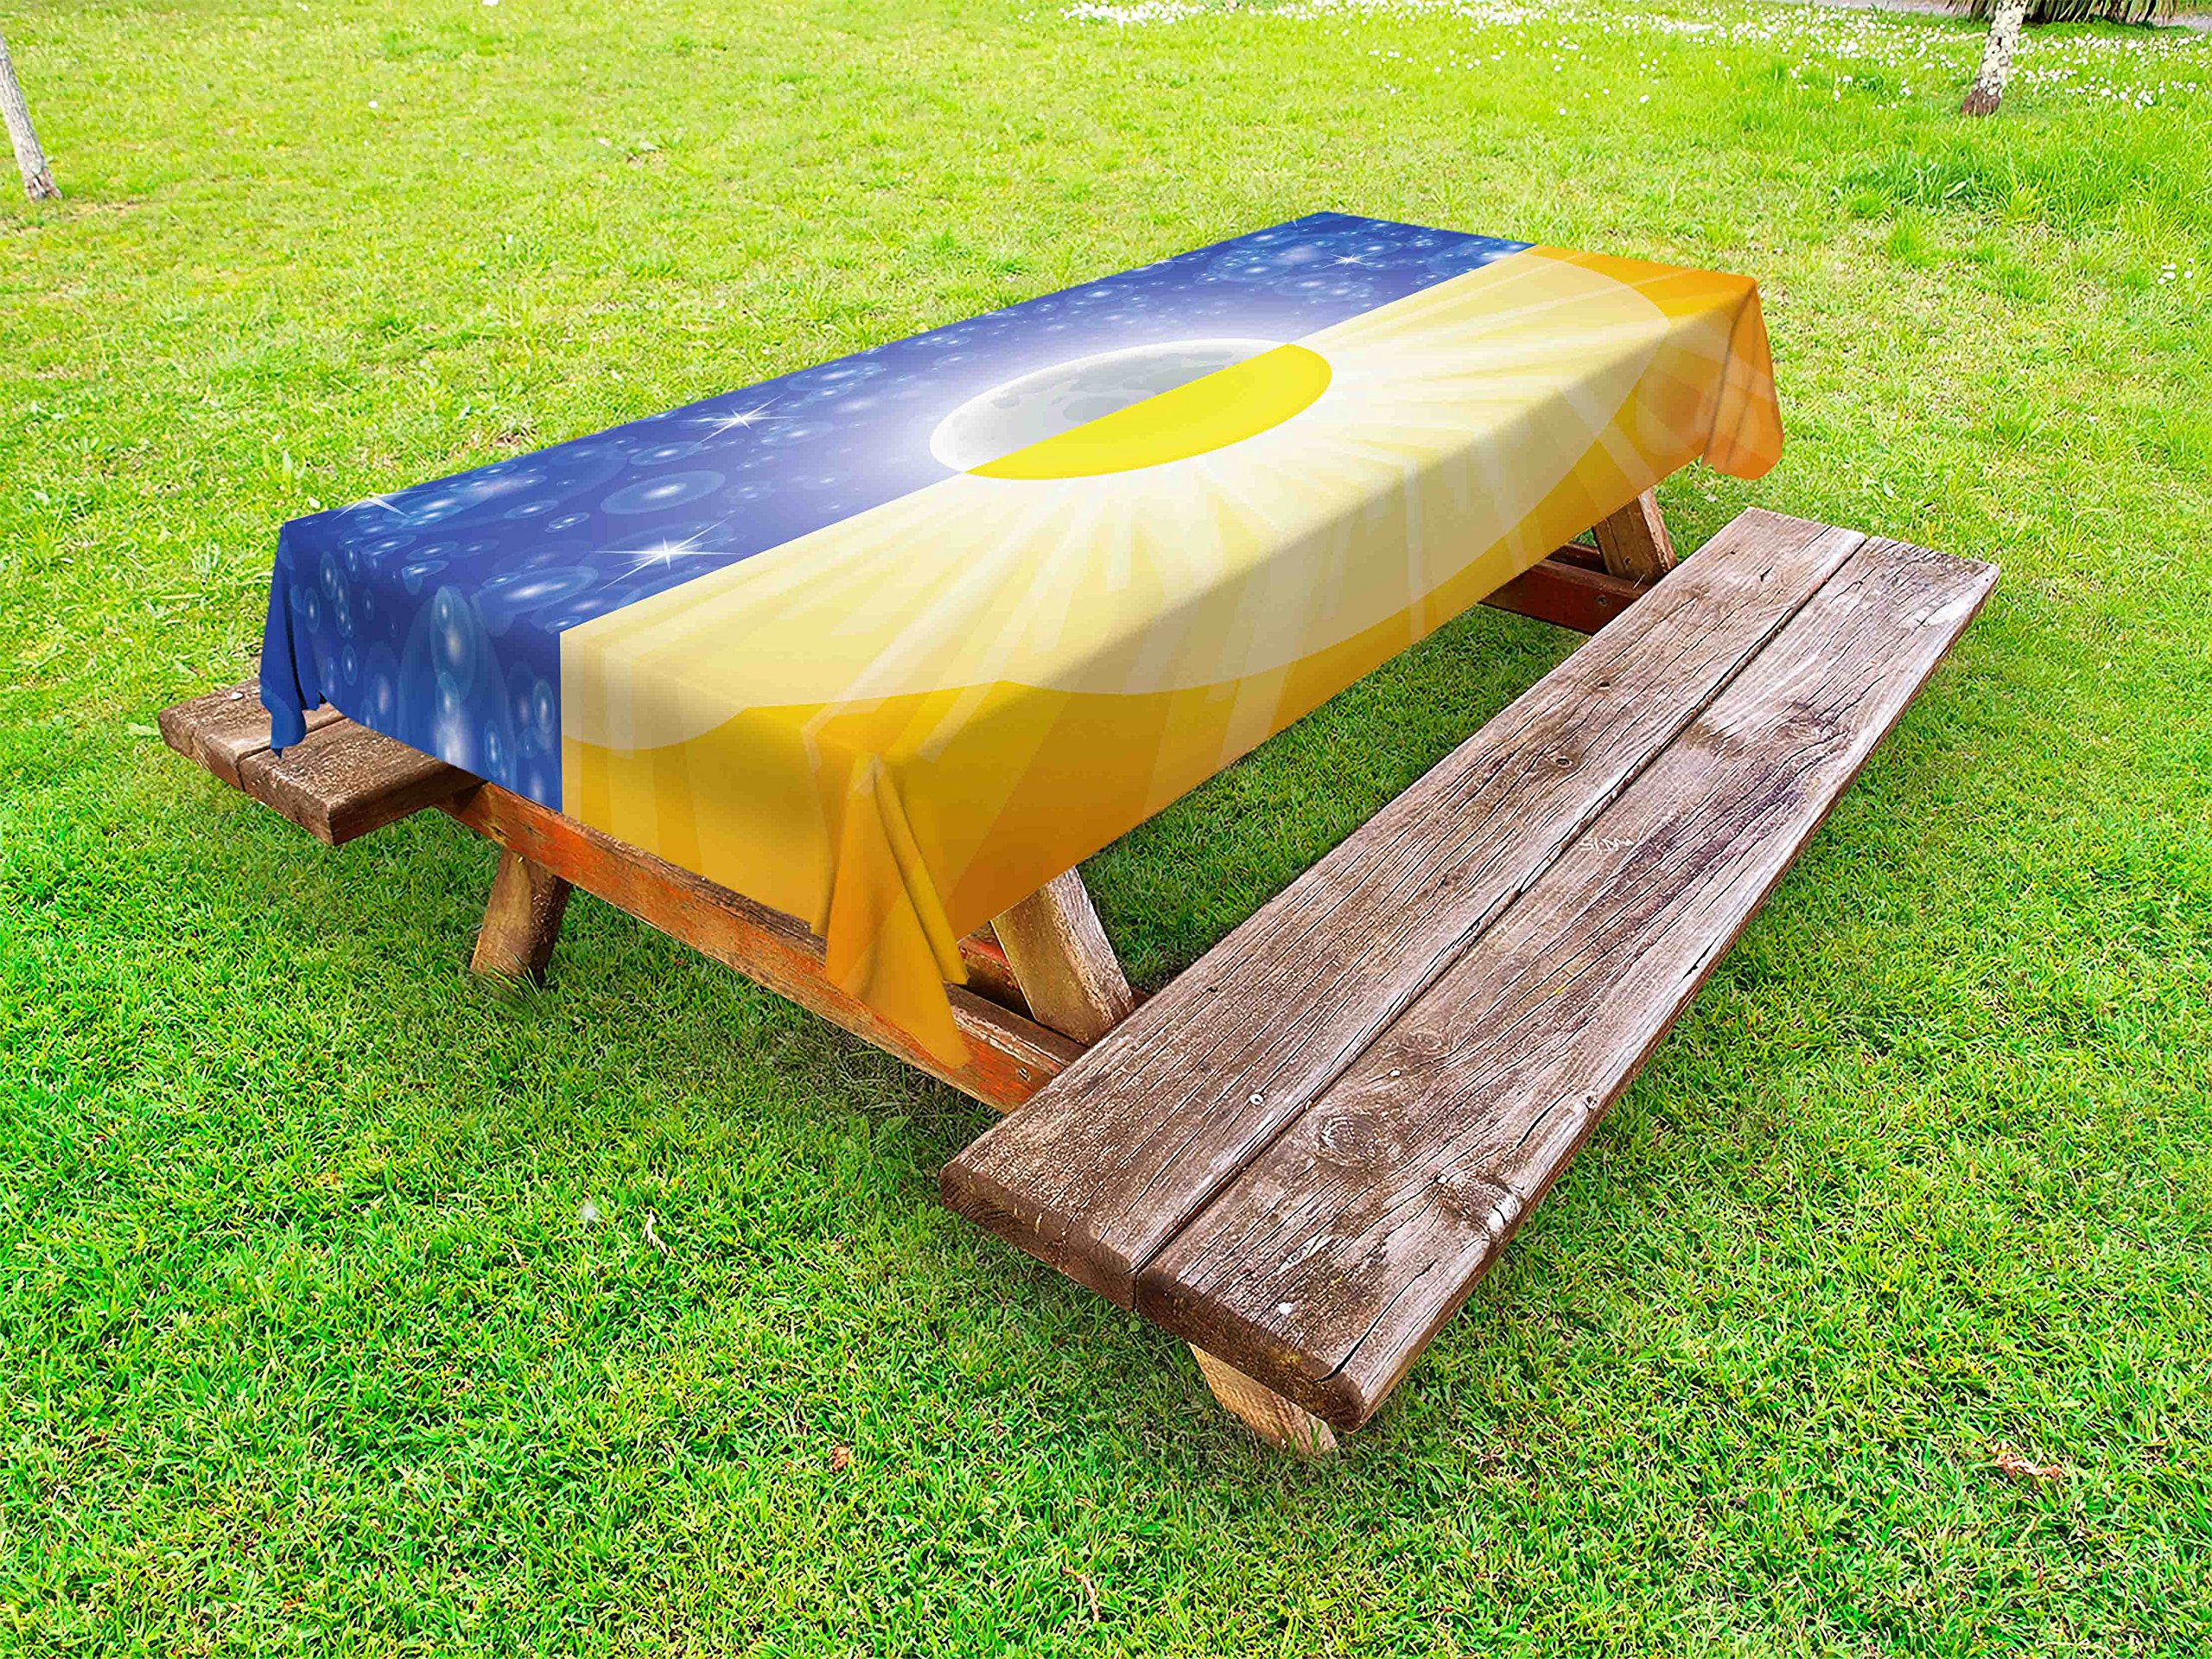 Ambesonne Space Outdoor Tablecloth, Split Design with Stars in The Sky and Sun Beams Solar Balance Nature Image Print, Decorative Washable Picnic Table Cloth, 58 X 104 inches, Blue Yellow